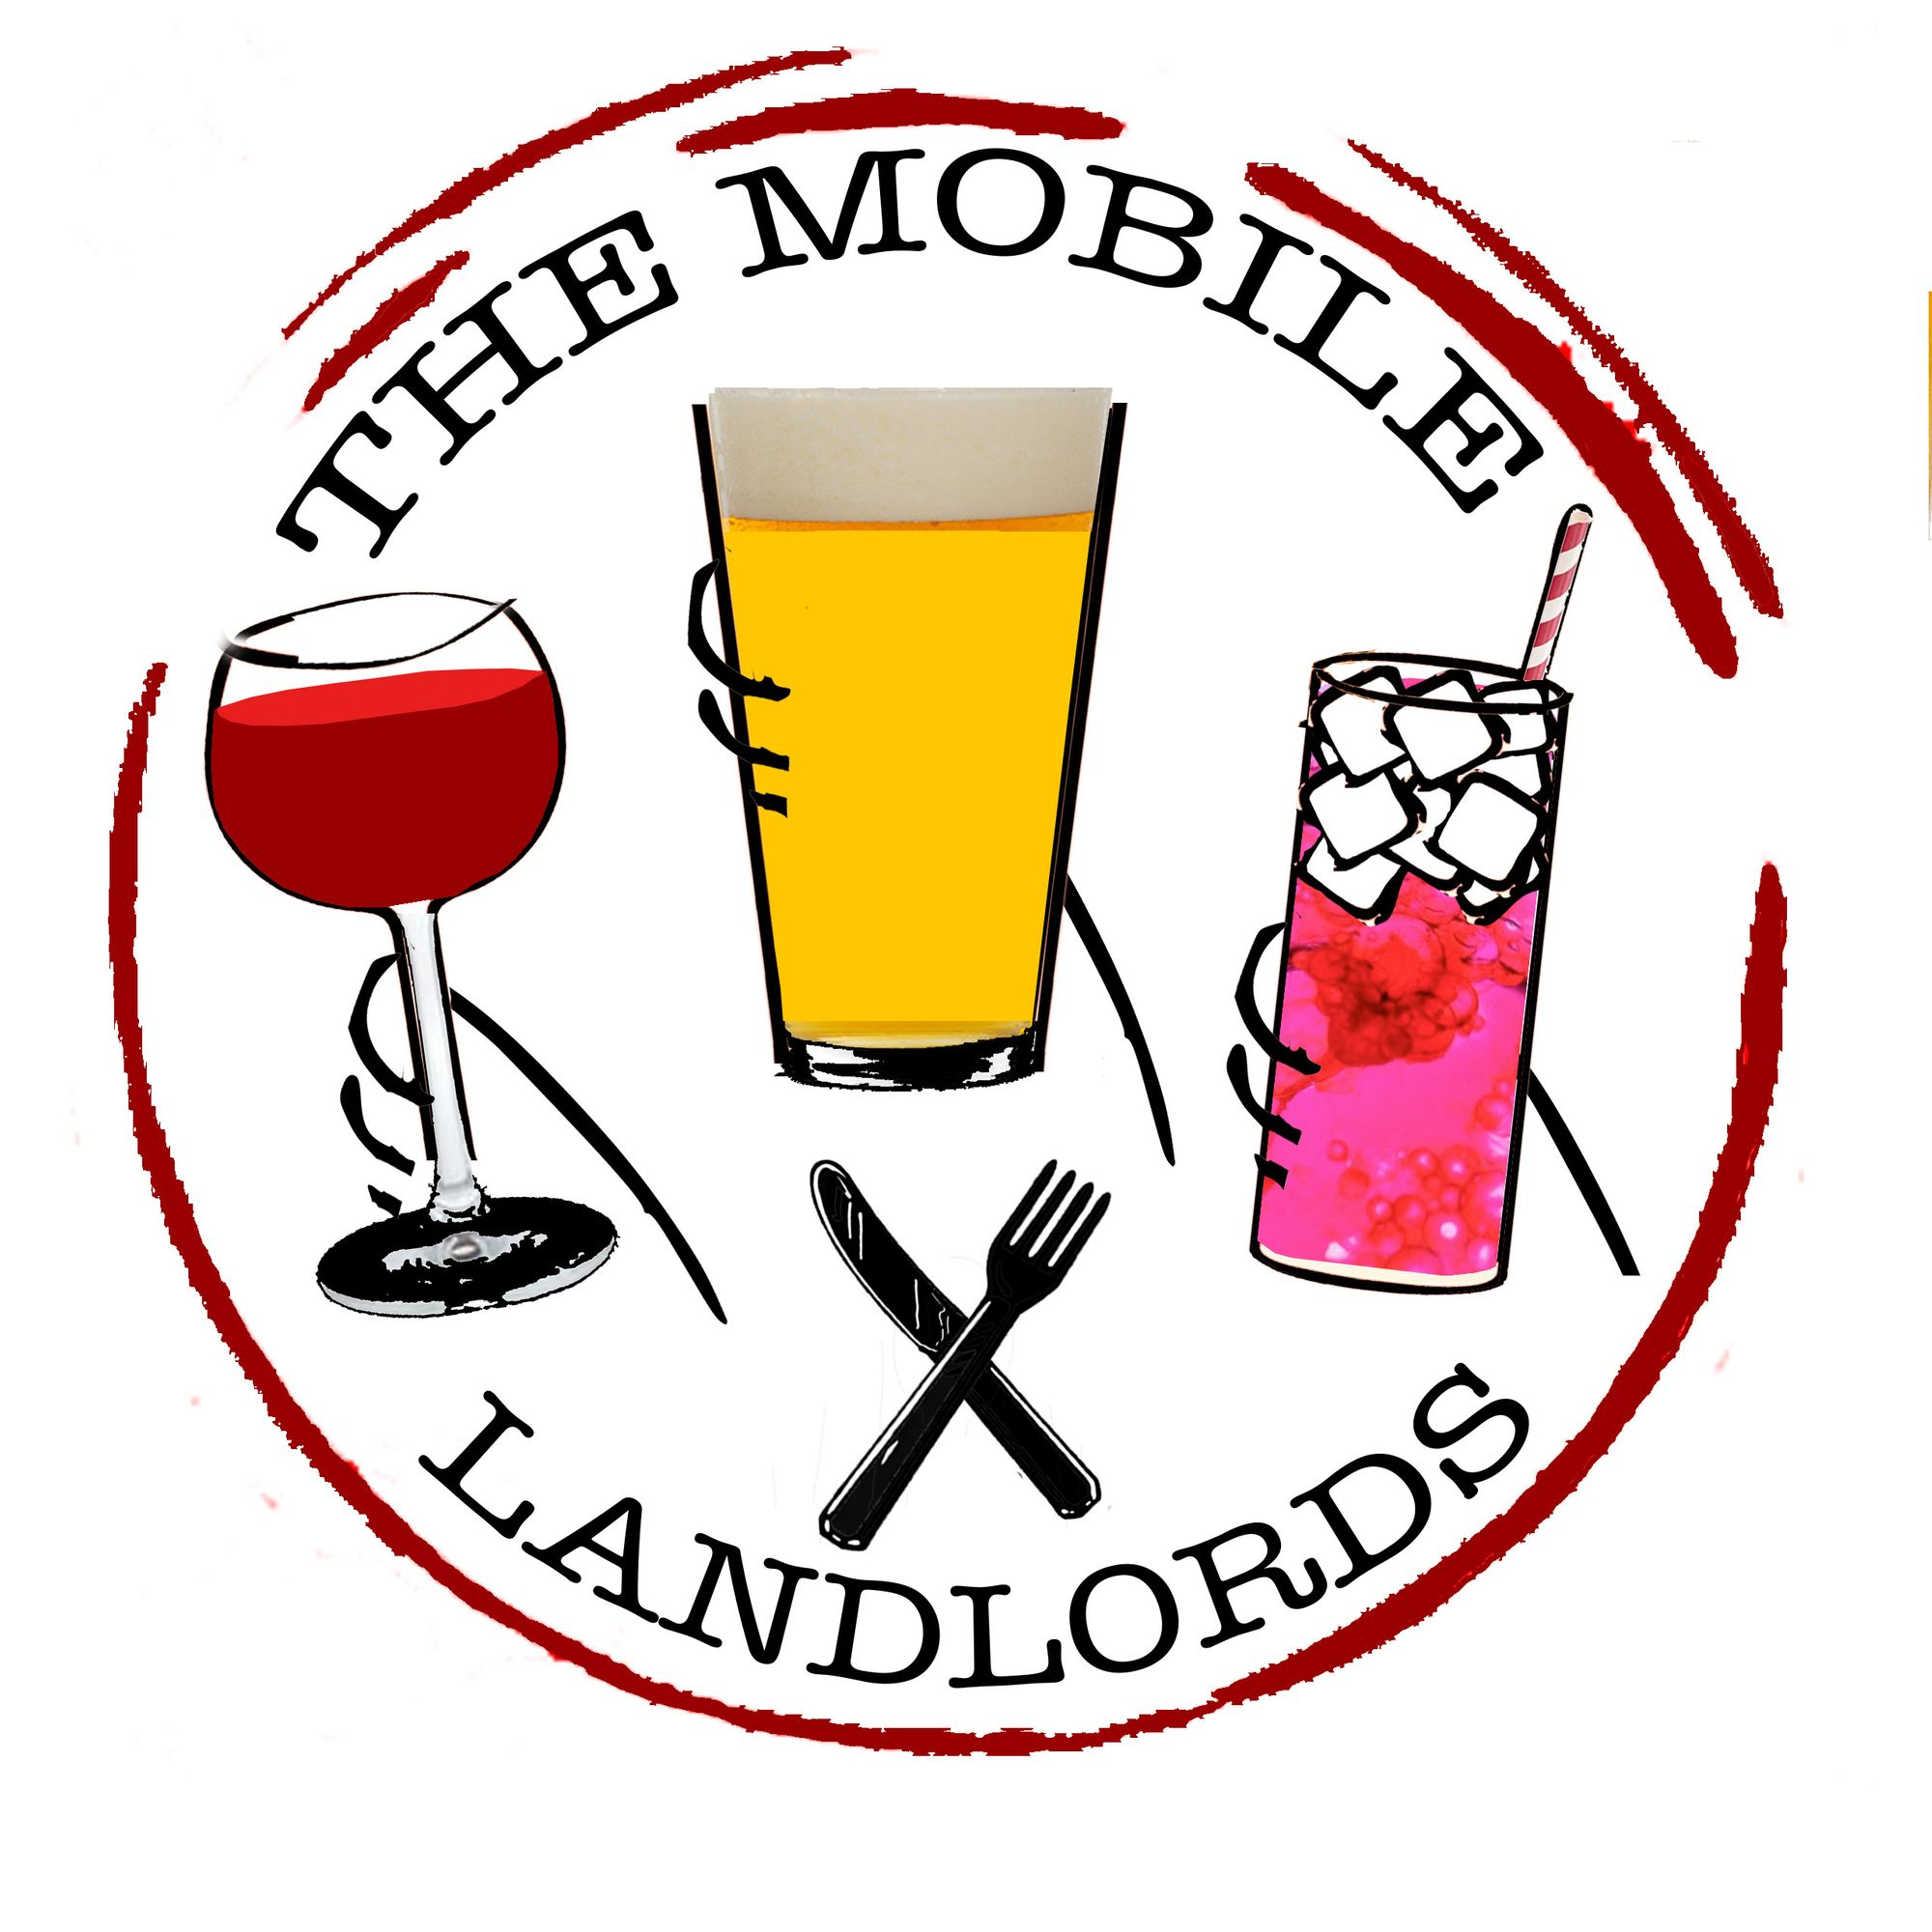 The Mobile Landlords